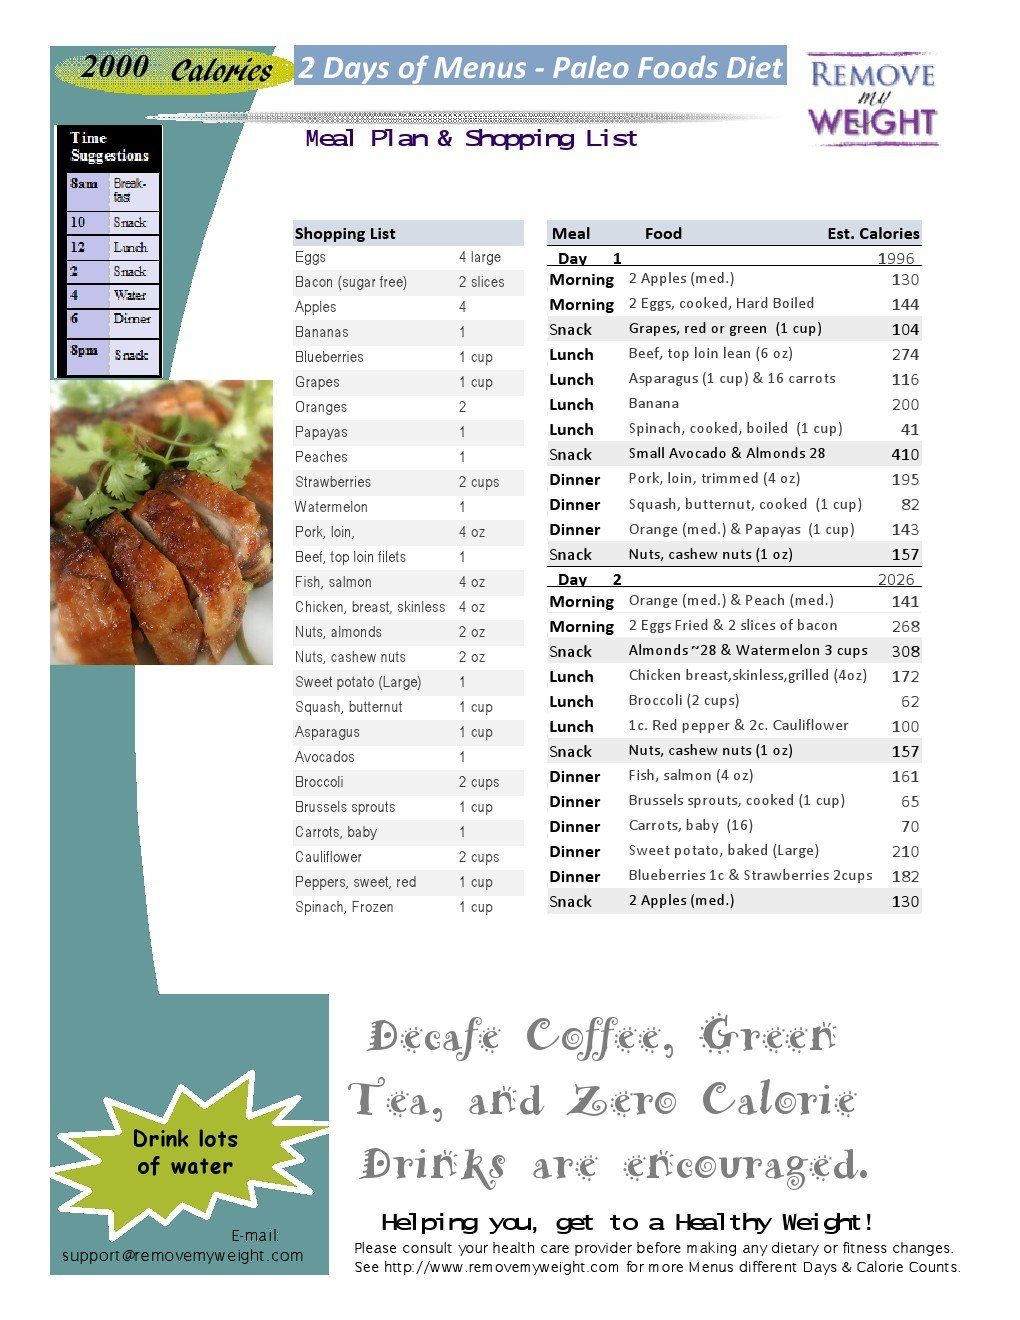 Pre-Pregnant Body Back: Free Weight Loss Menu And Shopping List